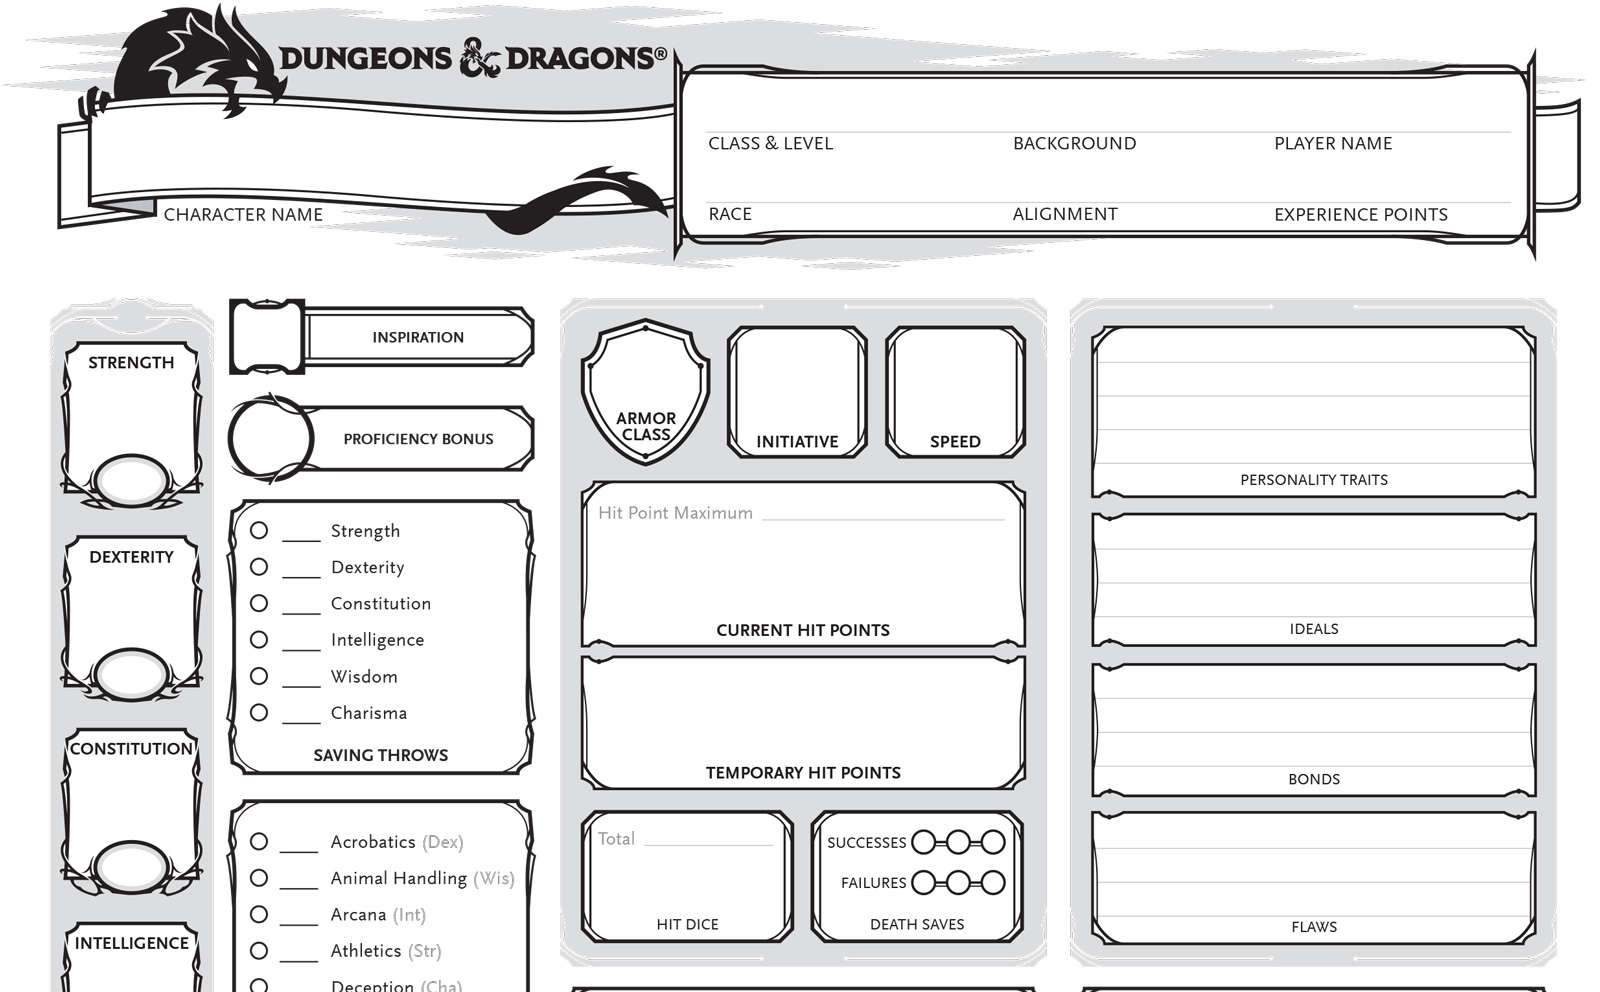 Character sheets in Dungeons & Dragons 5e.